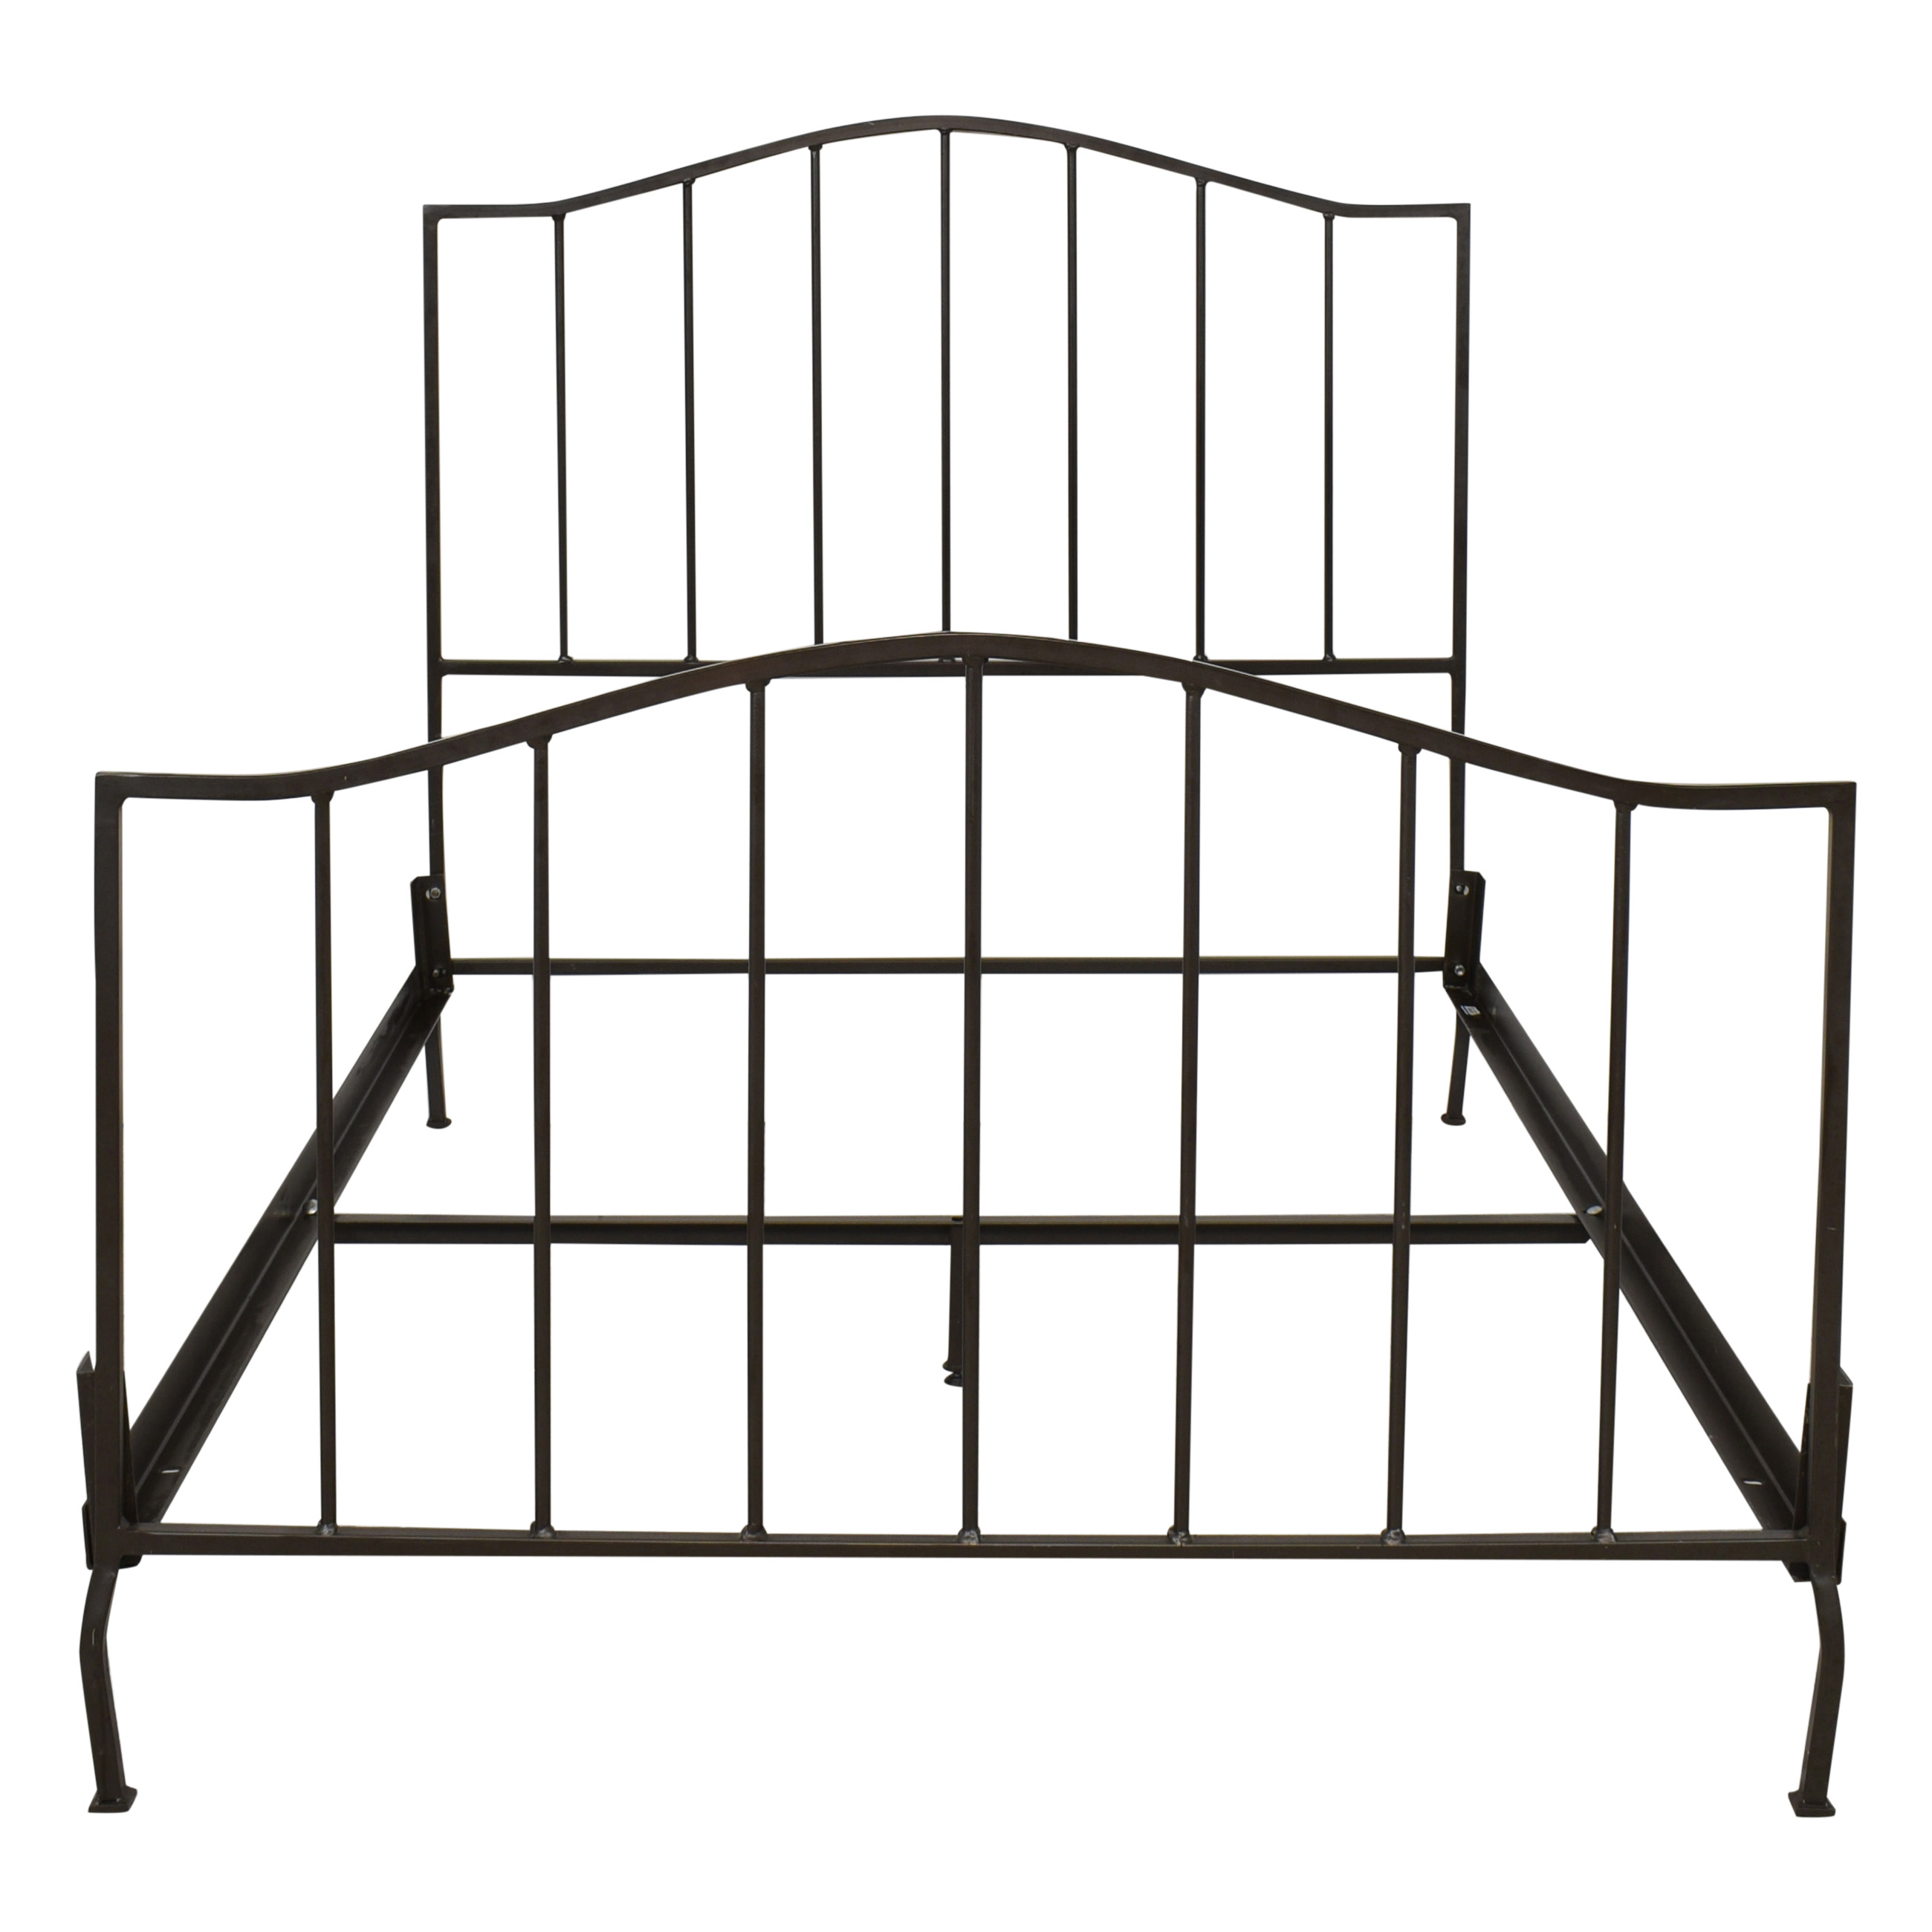 buy Crate & Barrel Full Metal Bed Frame Crate & Barrel Beds